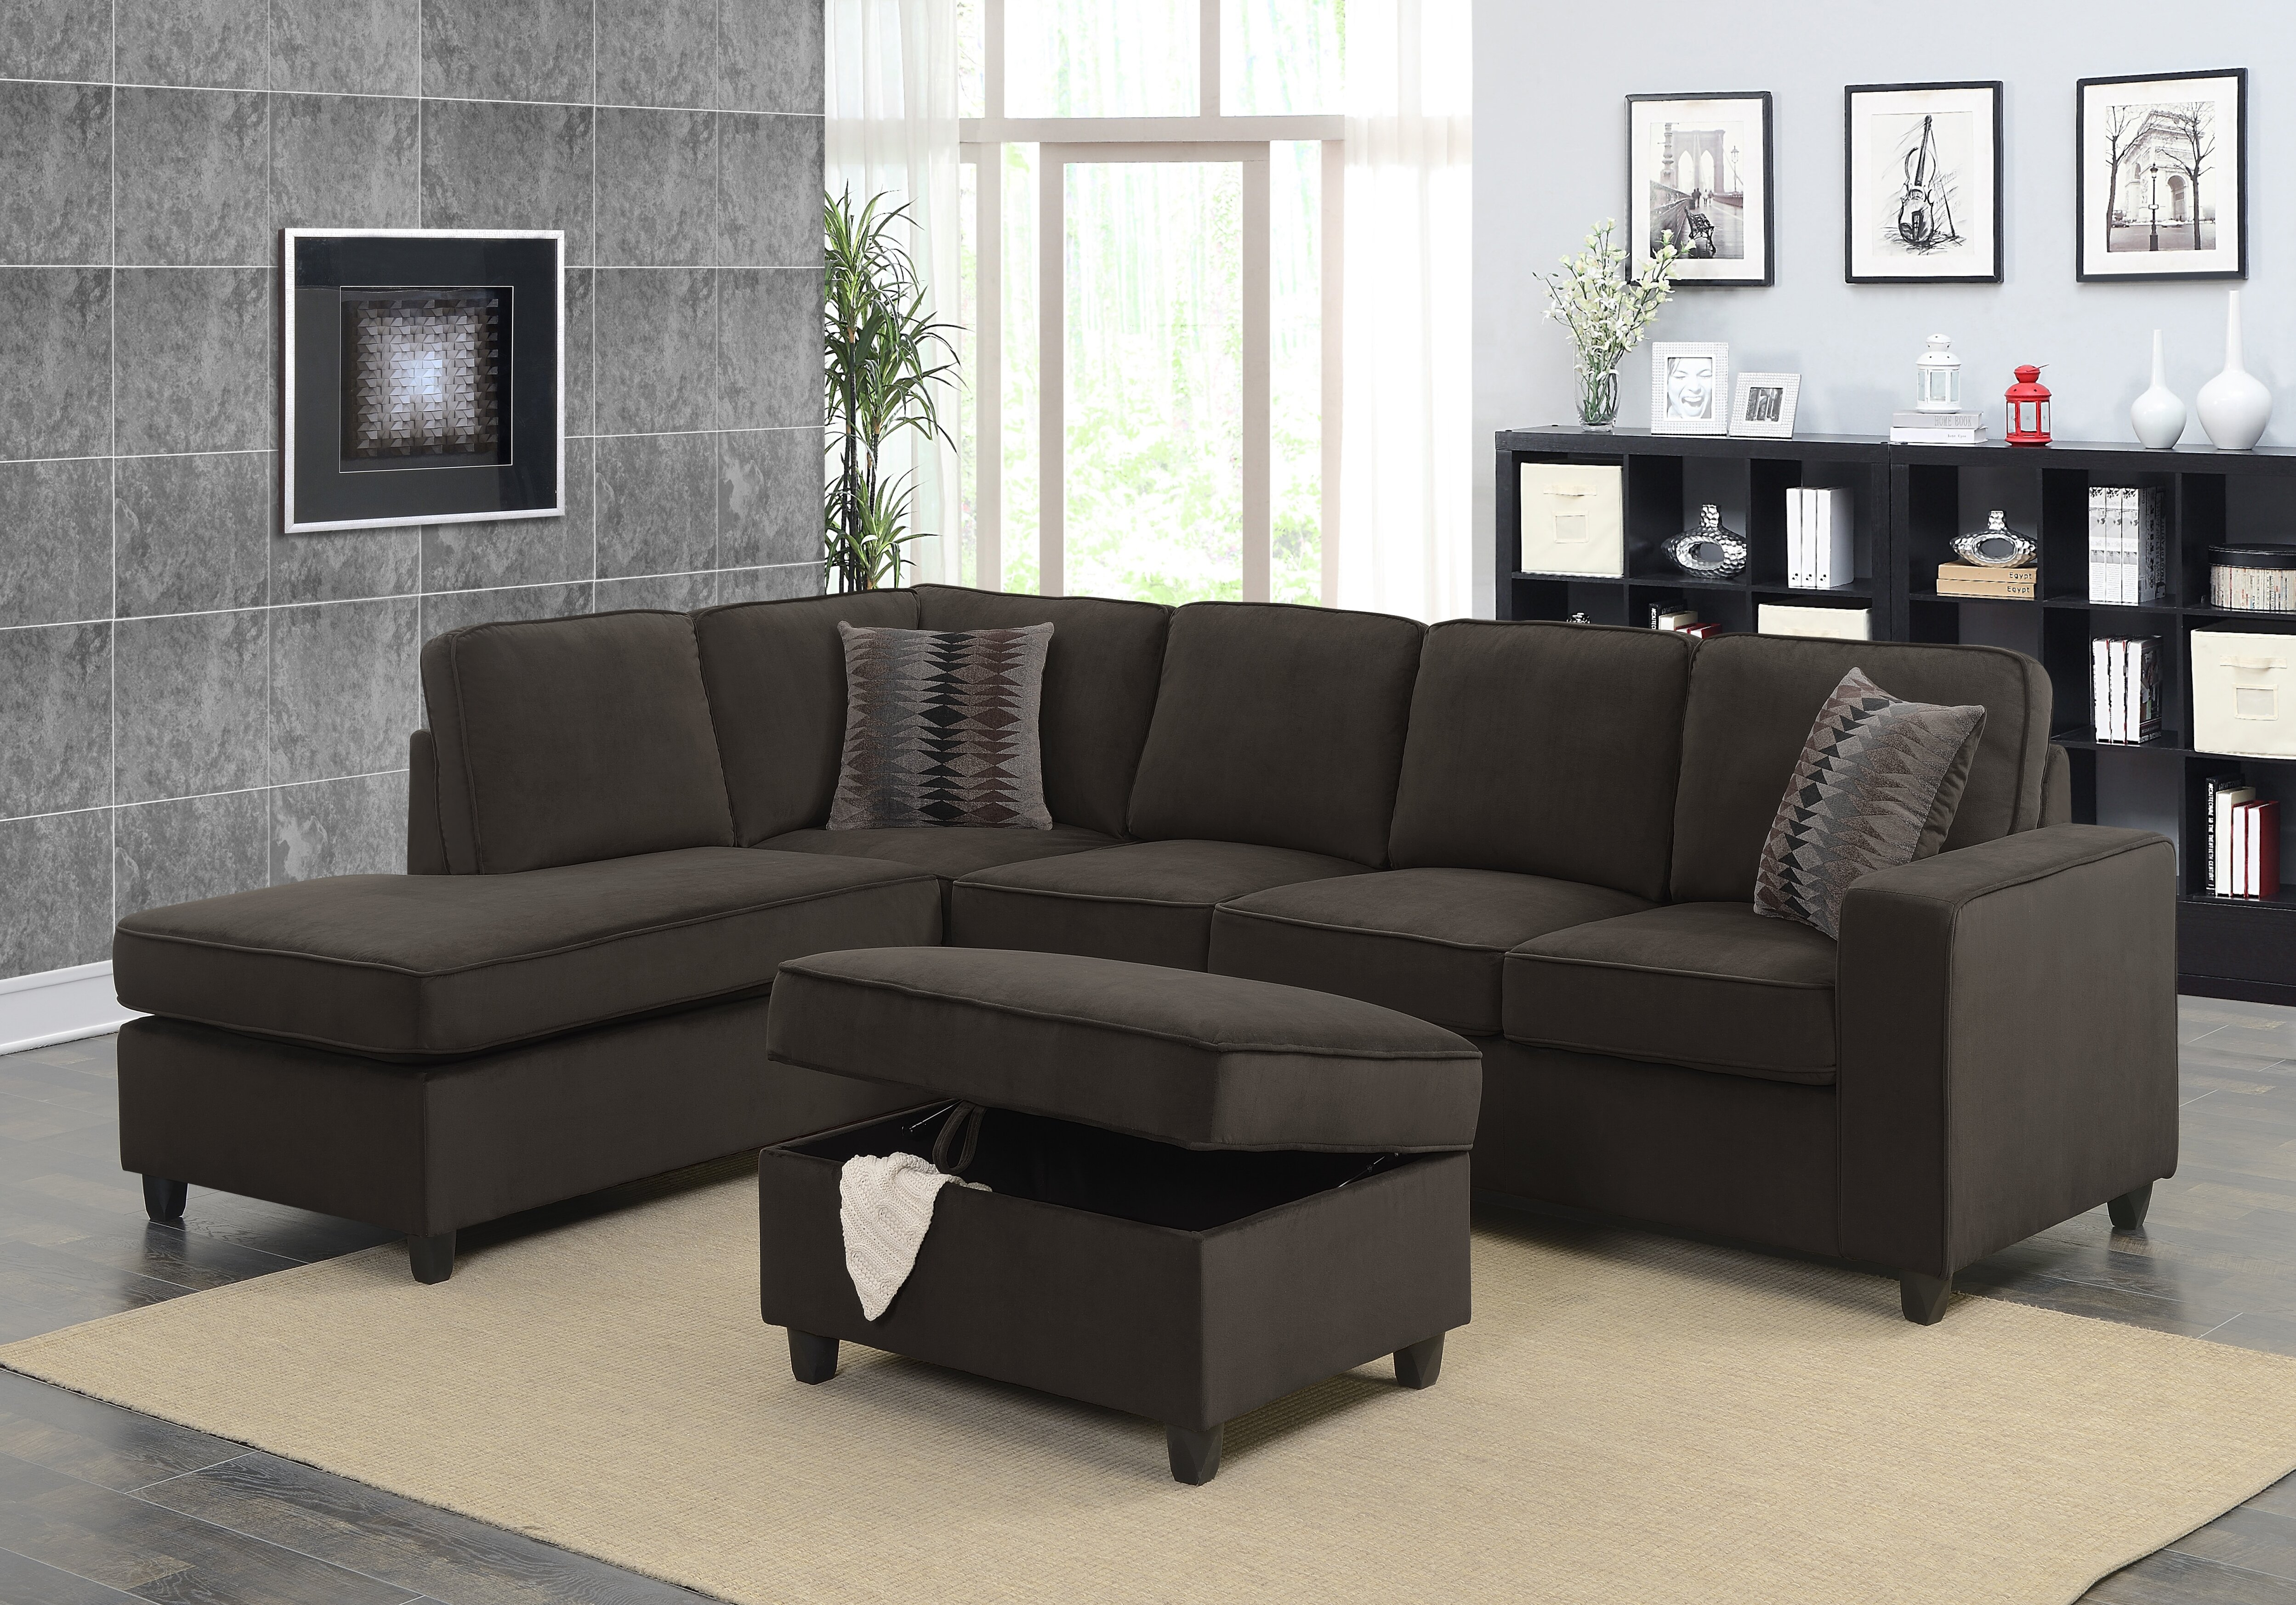 Zipcode design barksdale reversible sectional with ottoman reviews wayfair